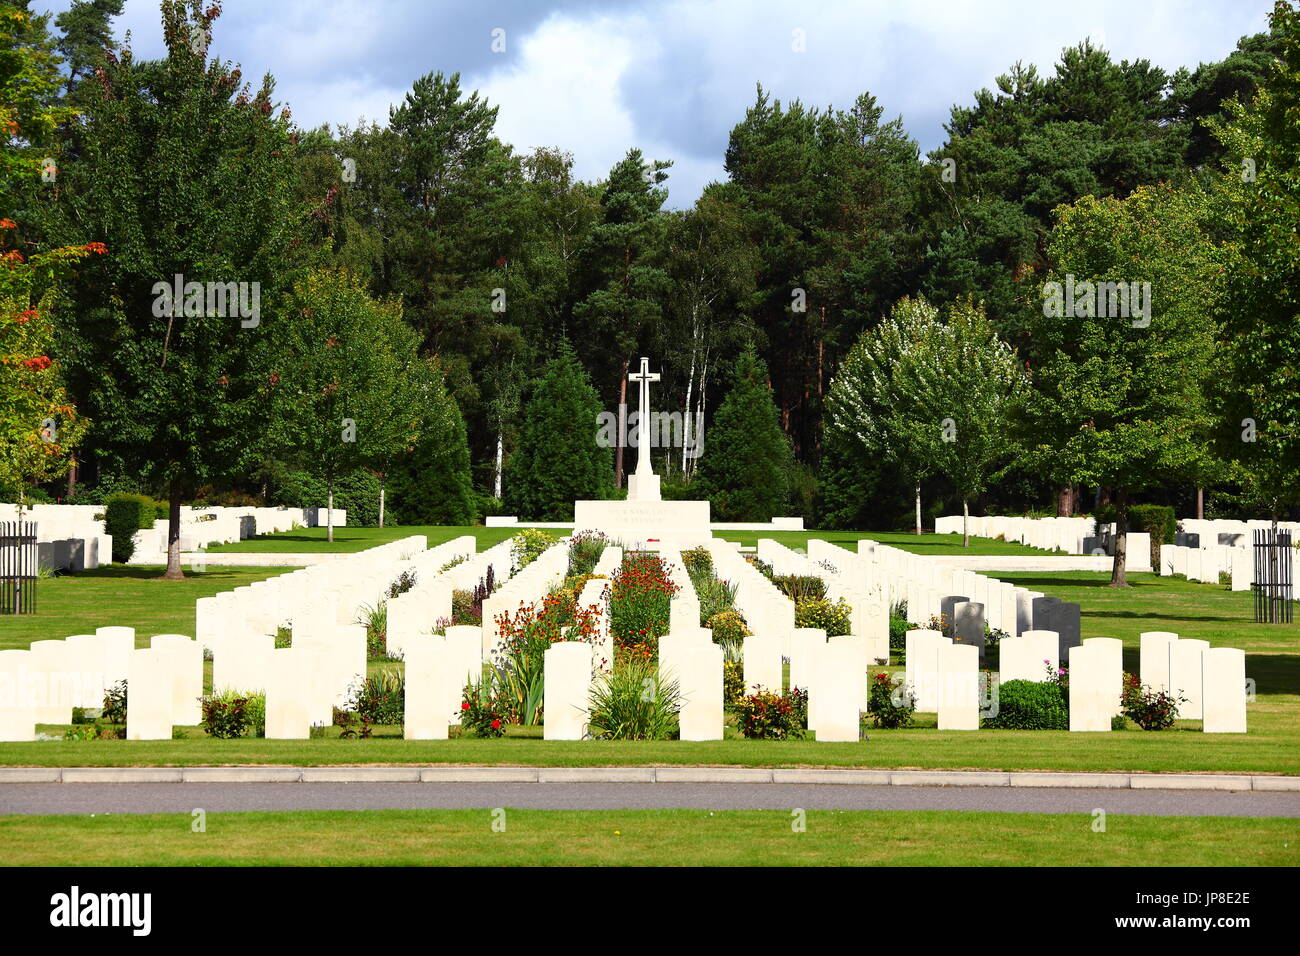 Brookwood Cemetery and Military Cemetery, also known as the London Necropolis, in Surrey. The largest cemetery in Stock Photo